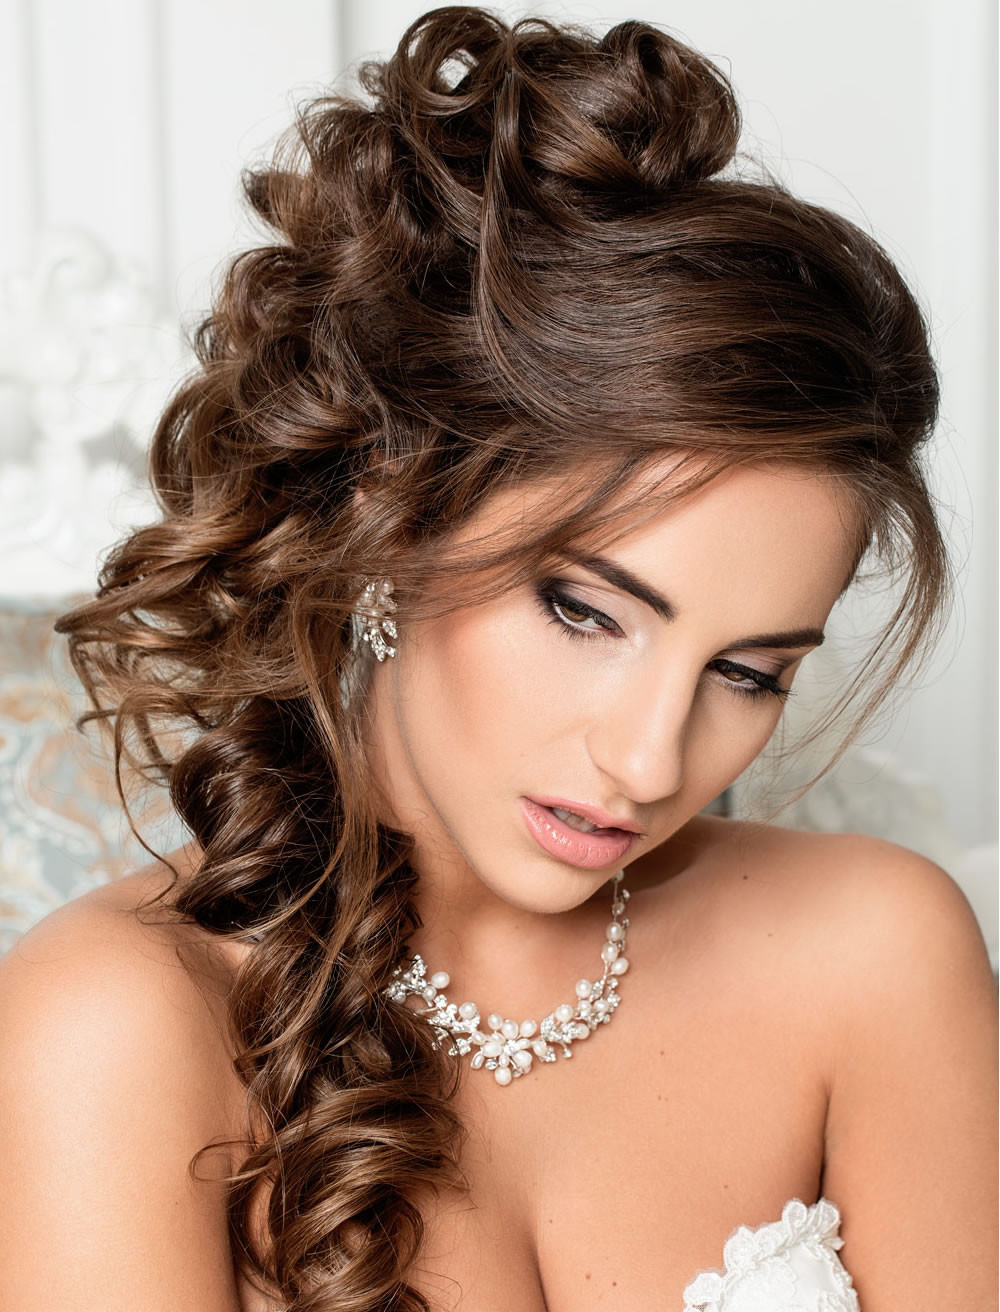 Bridesmaid Hairstyle  Very Stylish Wedding Hairstyles for Long Hair 2018 2019